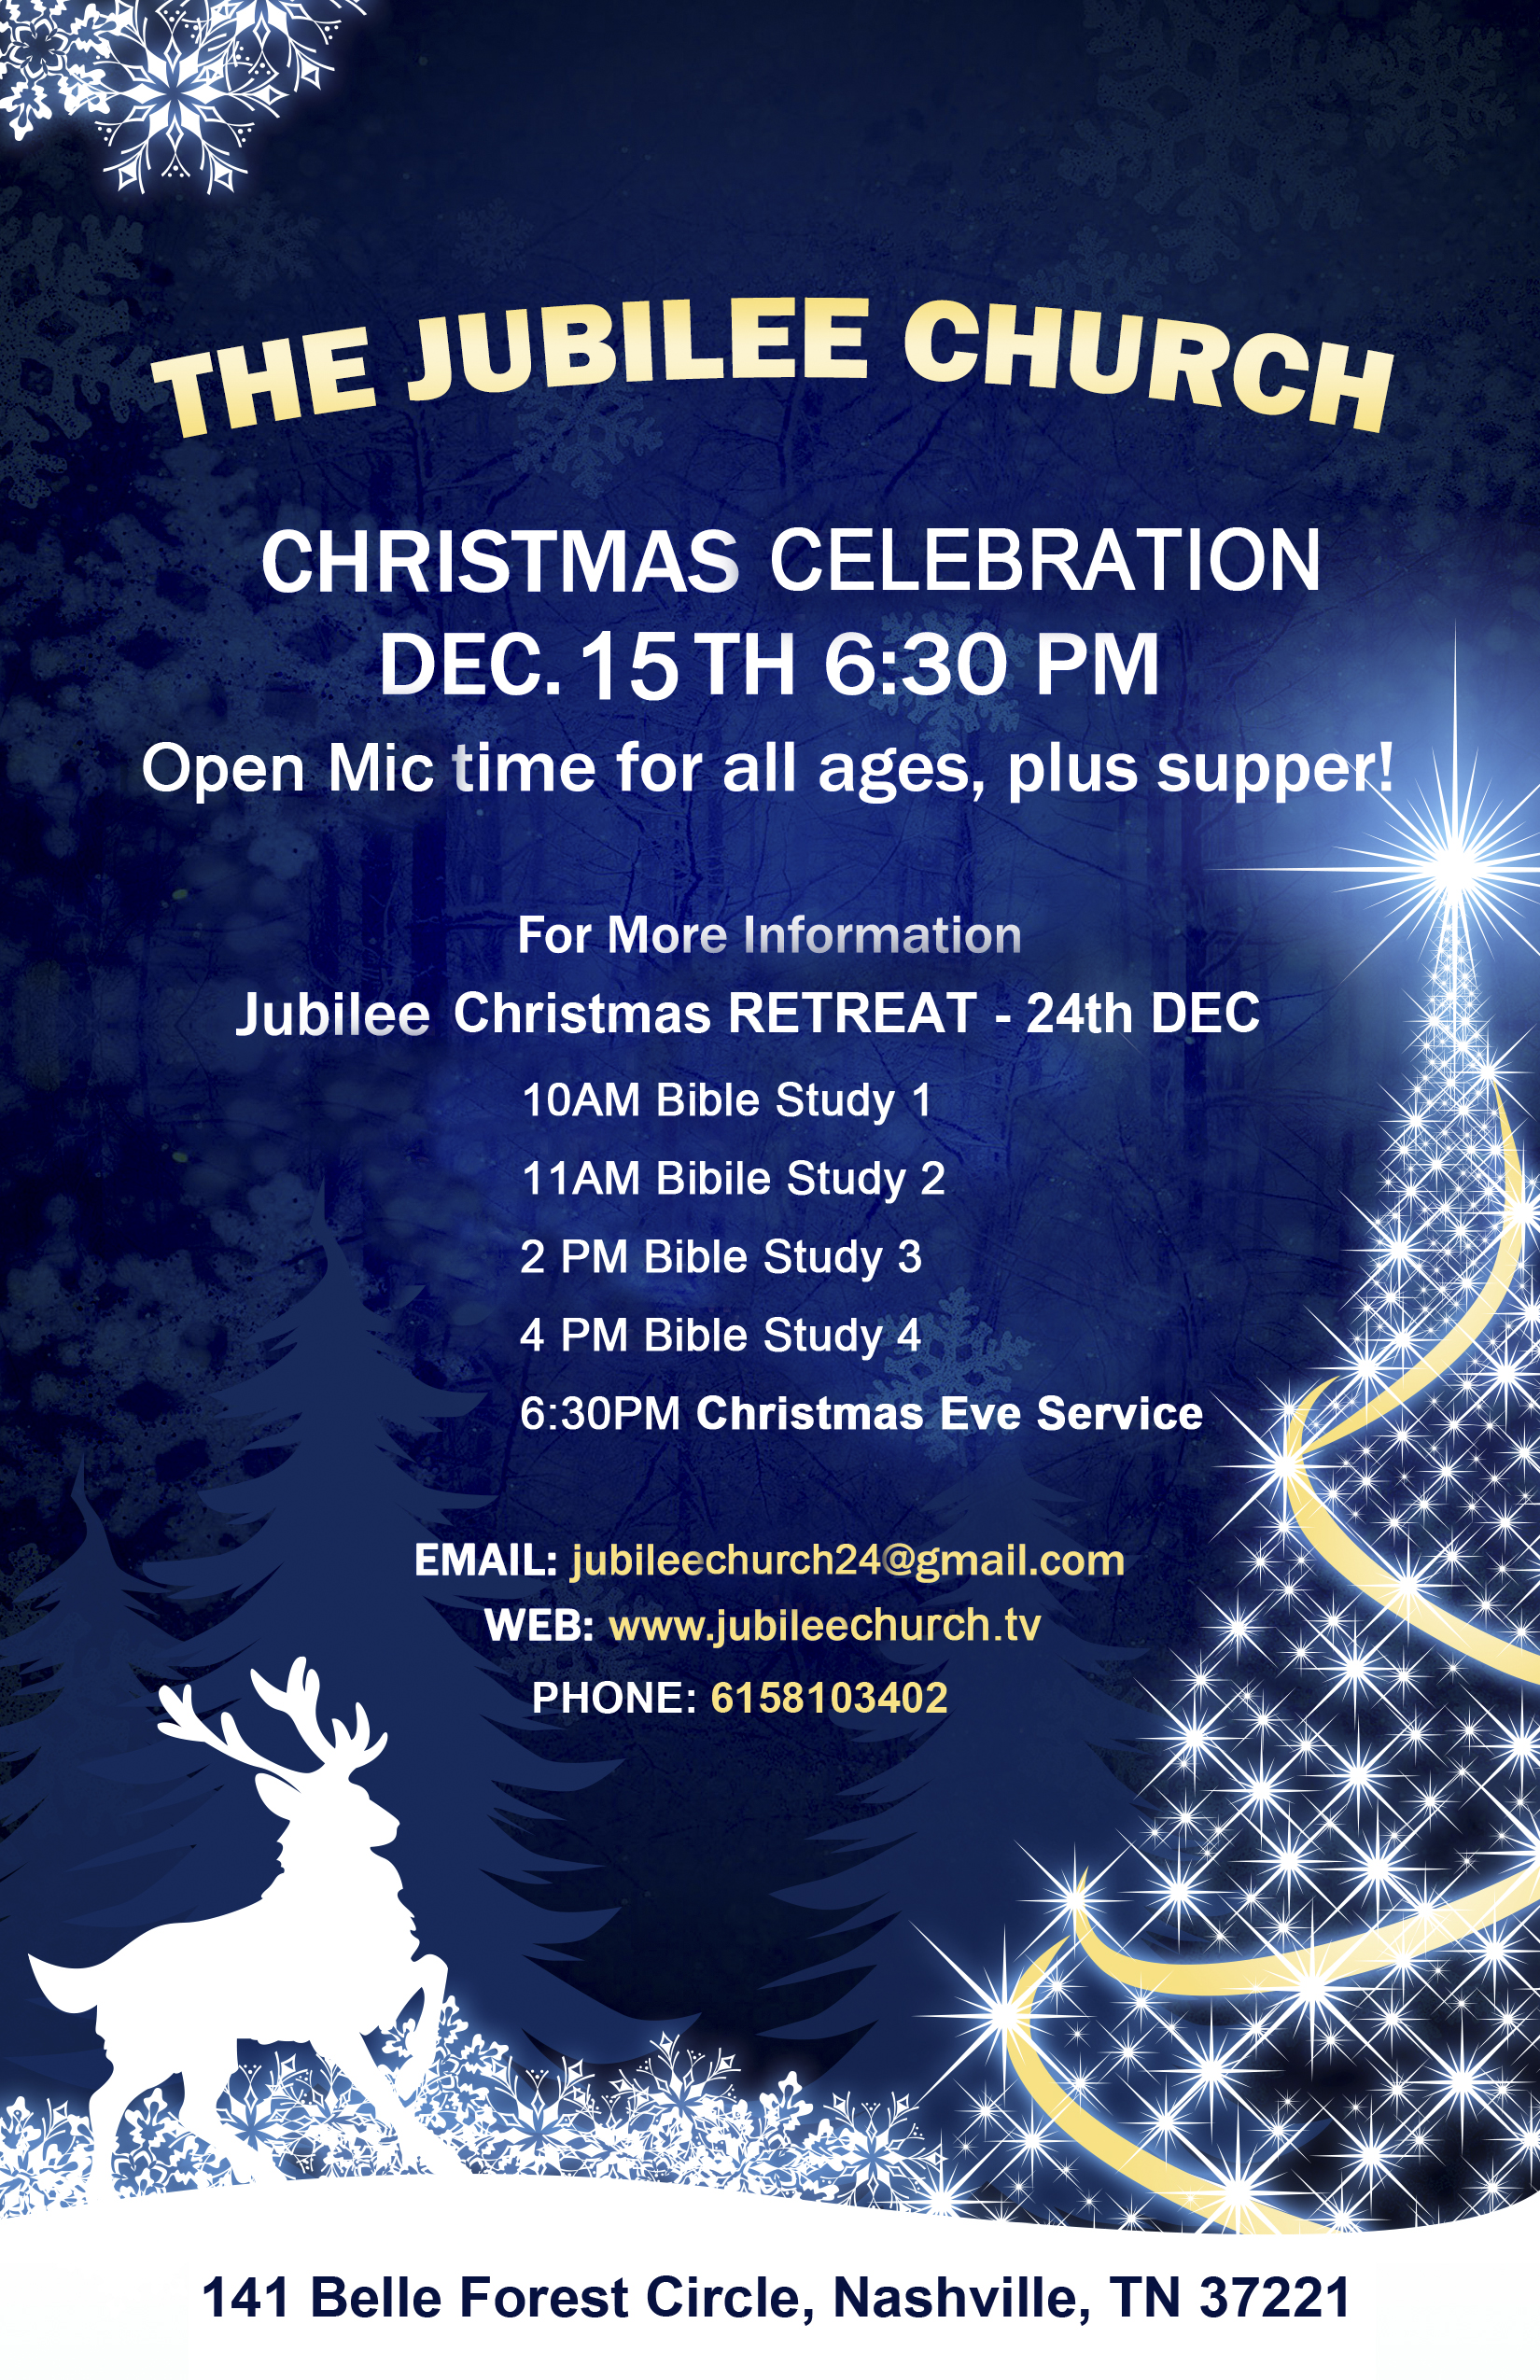 Jubilee church in nashville plans for christmas events for Jubilee parish